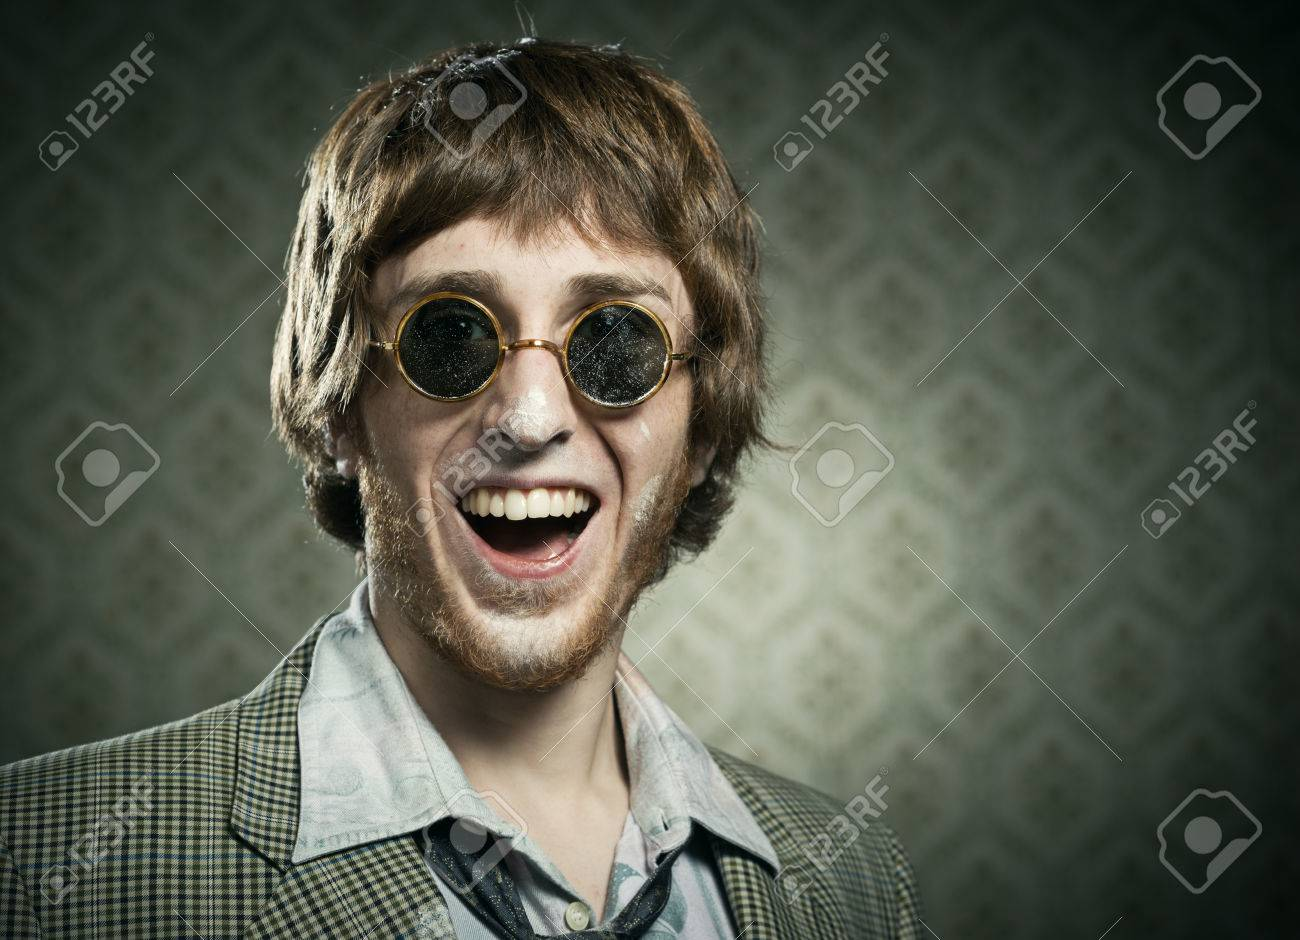 Funny 1960s Style Guy After Snorting Cocaine On Vintage Wallpaper Background Stock Photo